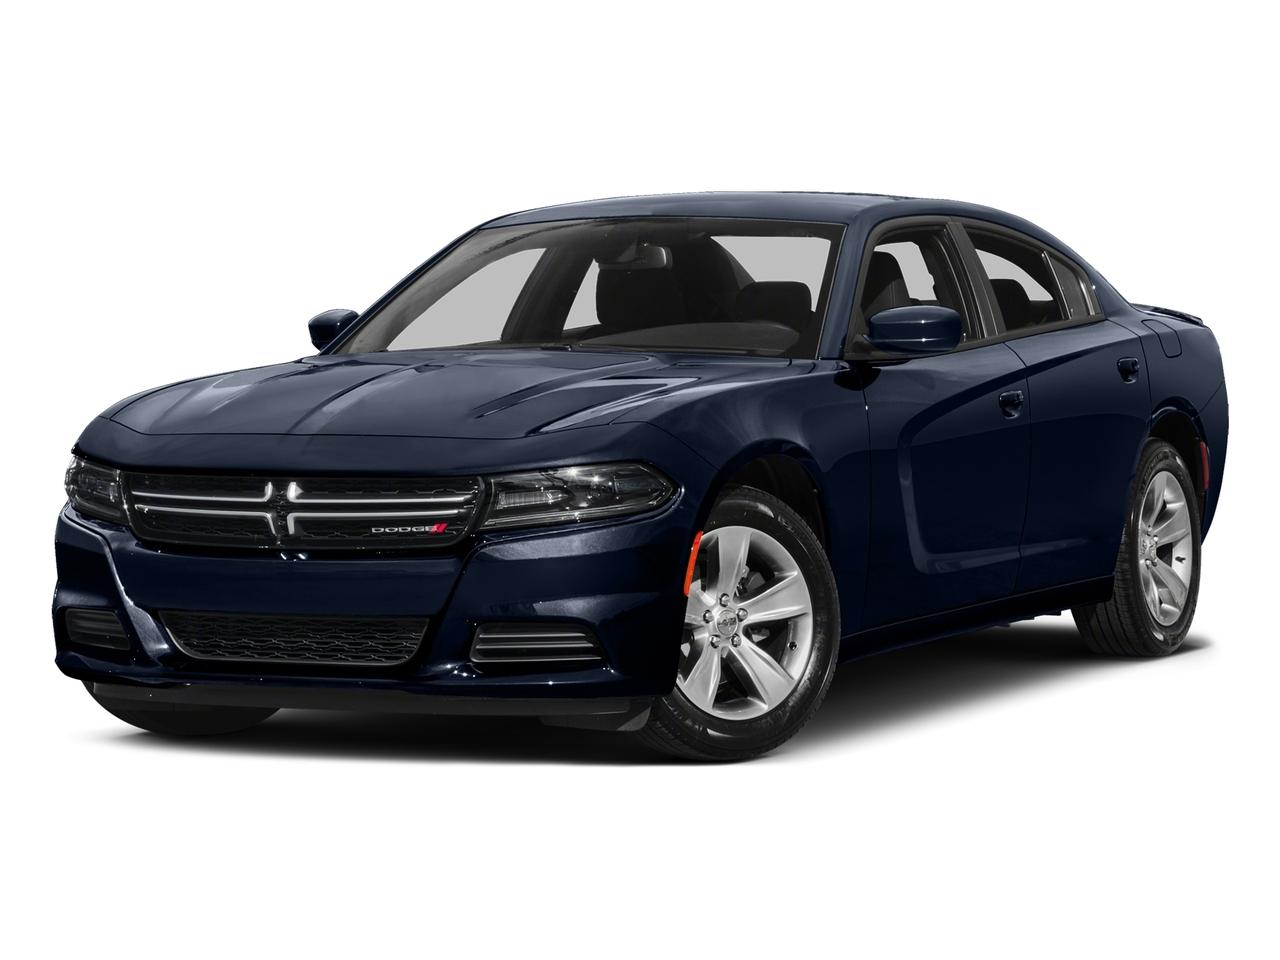 2015 Dodge Charger Vehicle Photo in COLMA, CA 94014-3284